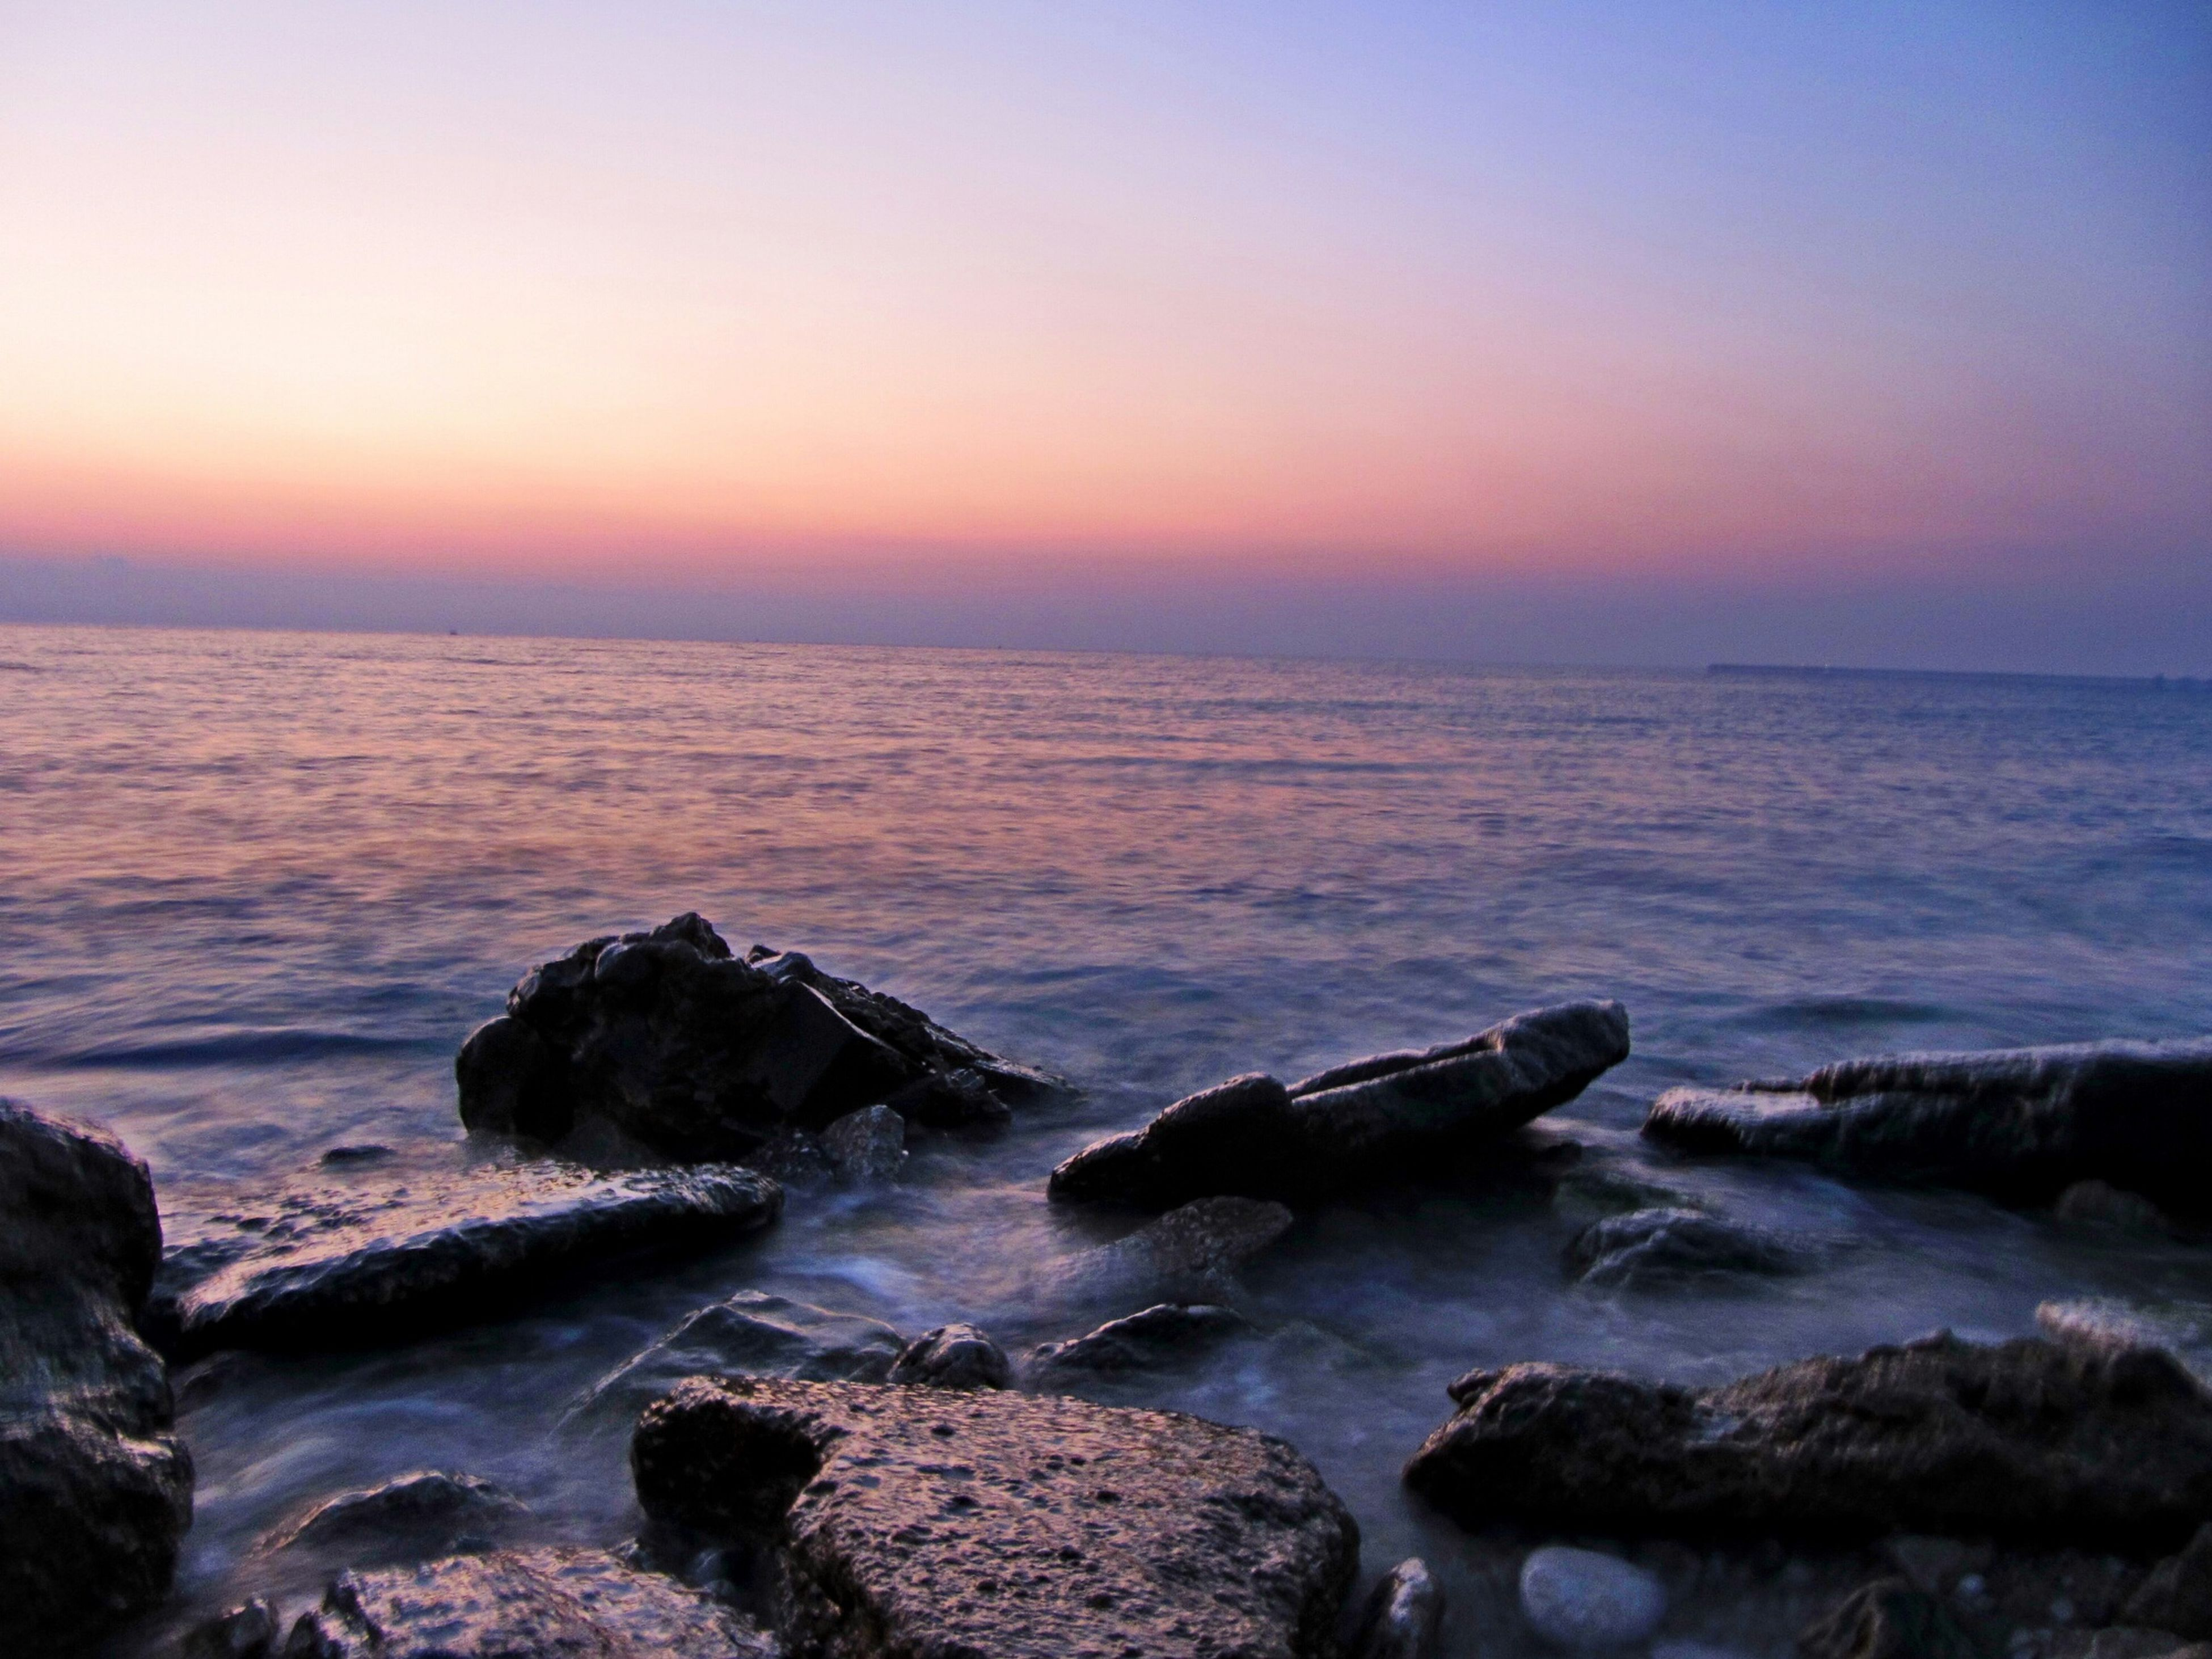 sea, water, horizon over water, scenics, rock - object, beauty in nature, tranquil scene, tranquility, sunset, nature, rock formation, wave, shore, sky, rock, idyllic, beach, clear sky, surf, outdoors